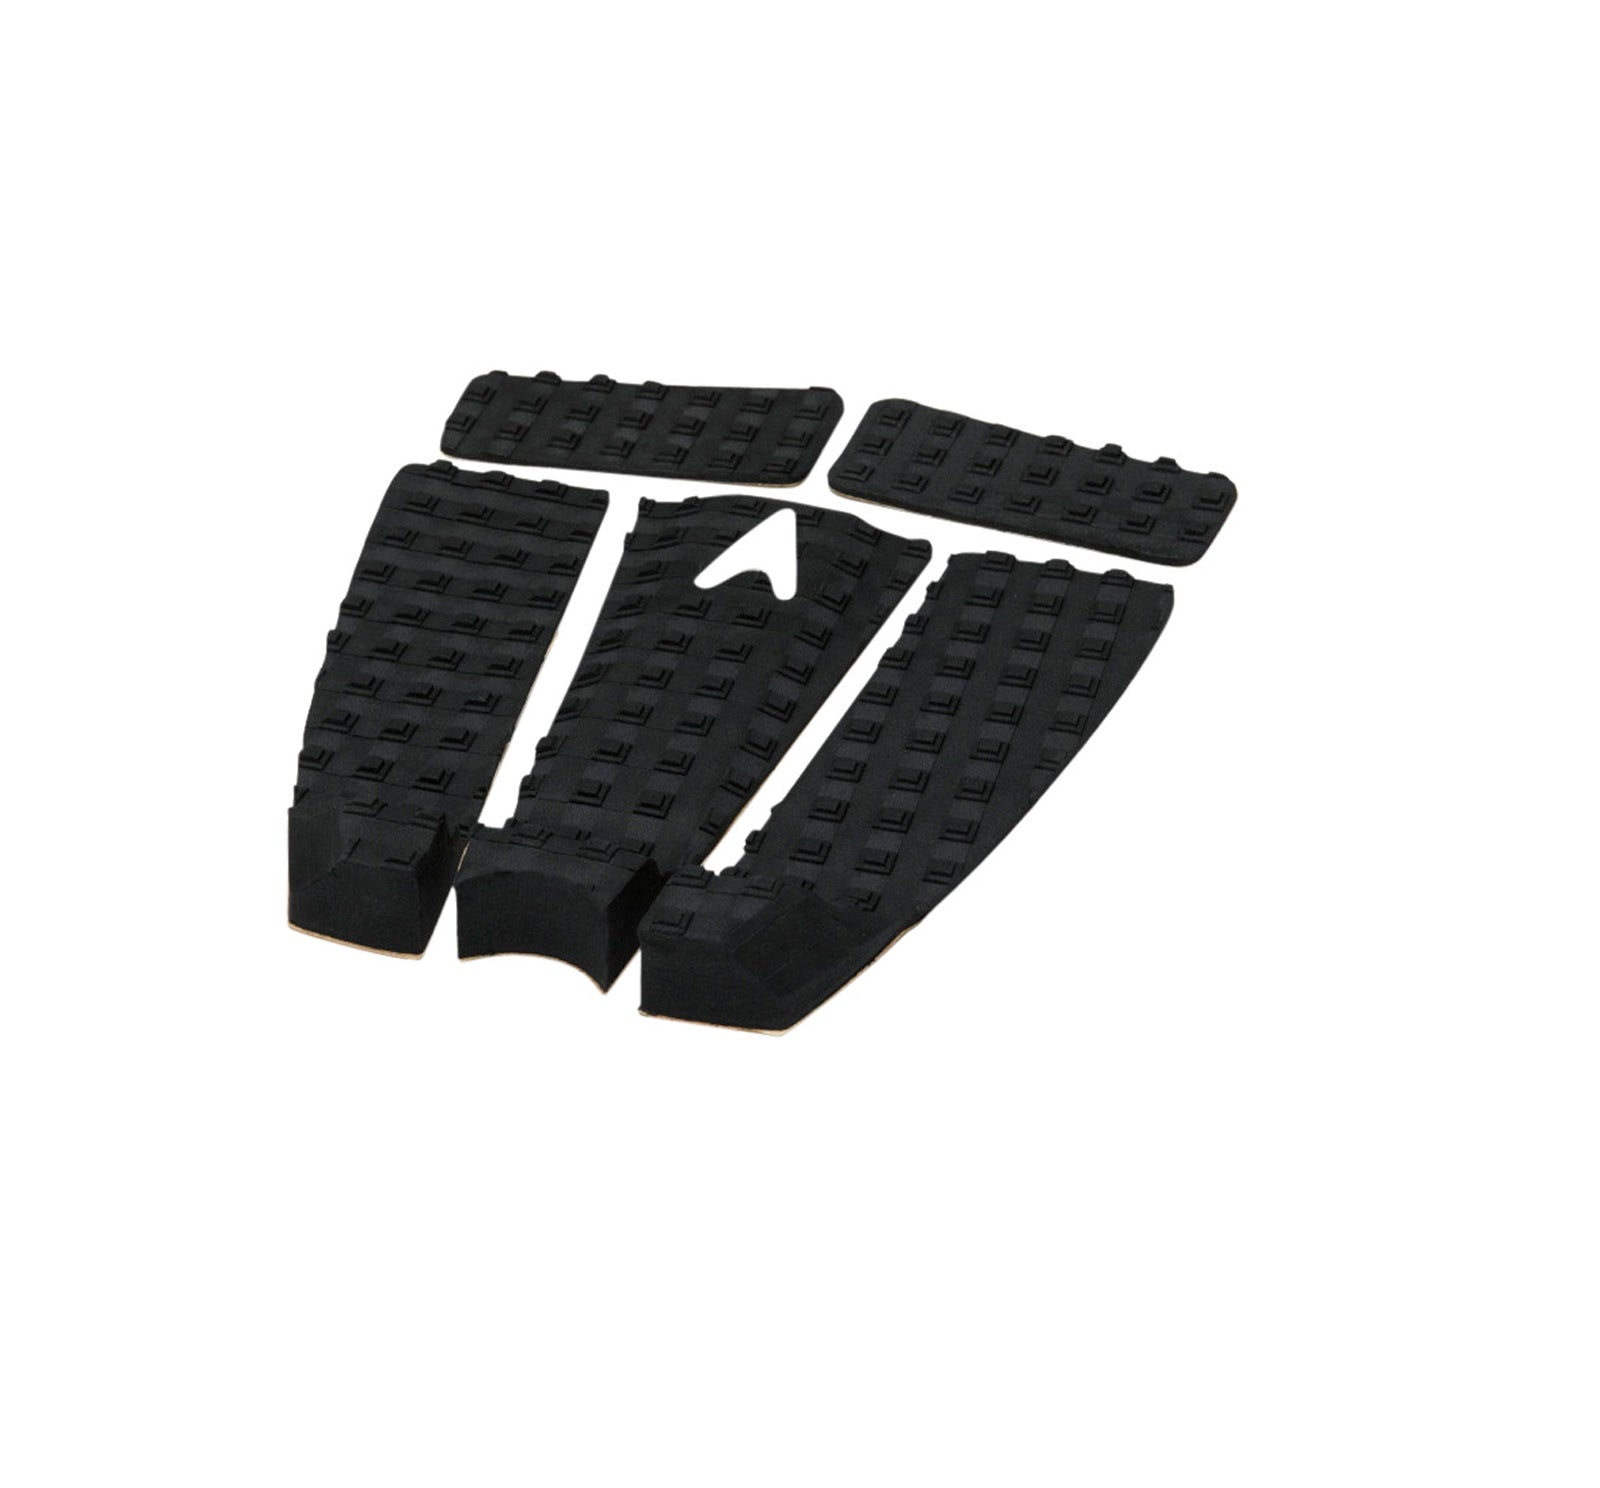 Astrodeck Barney Traction Pad